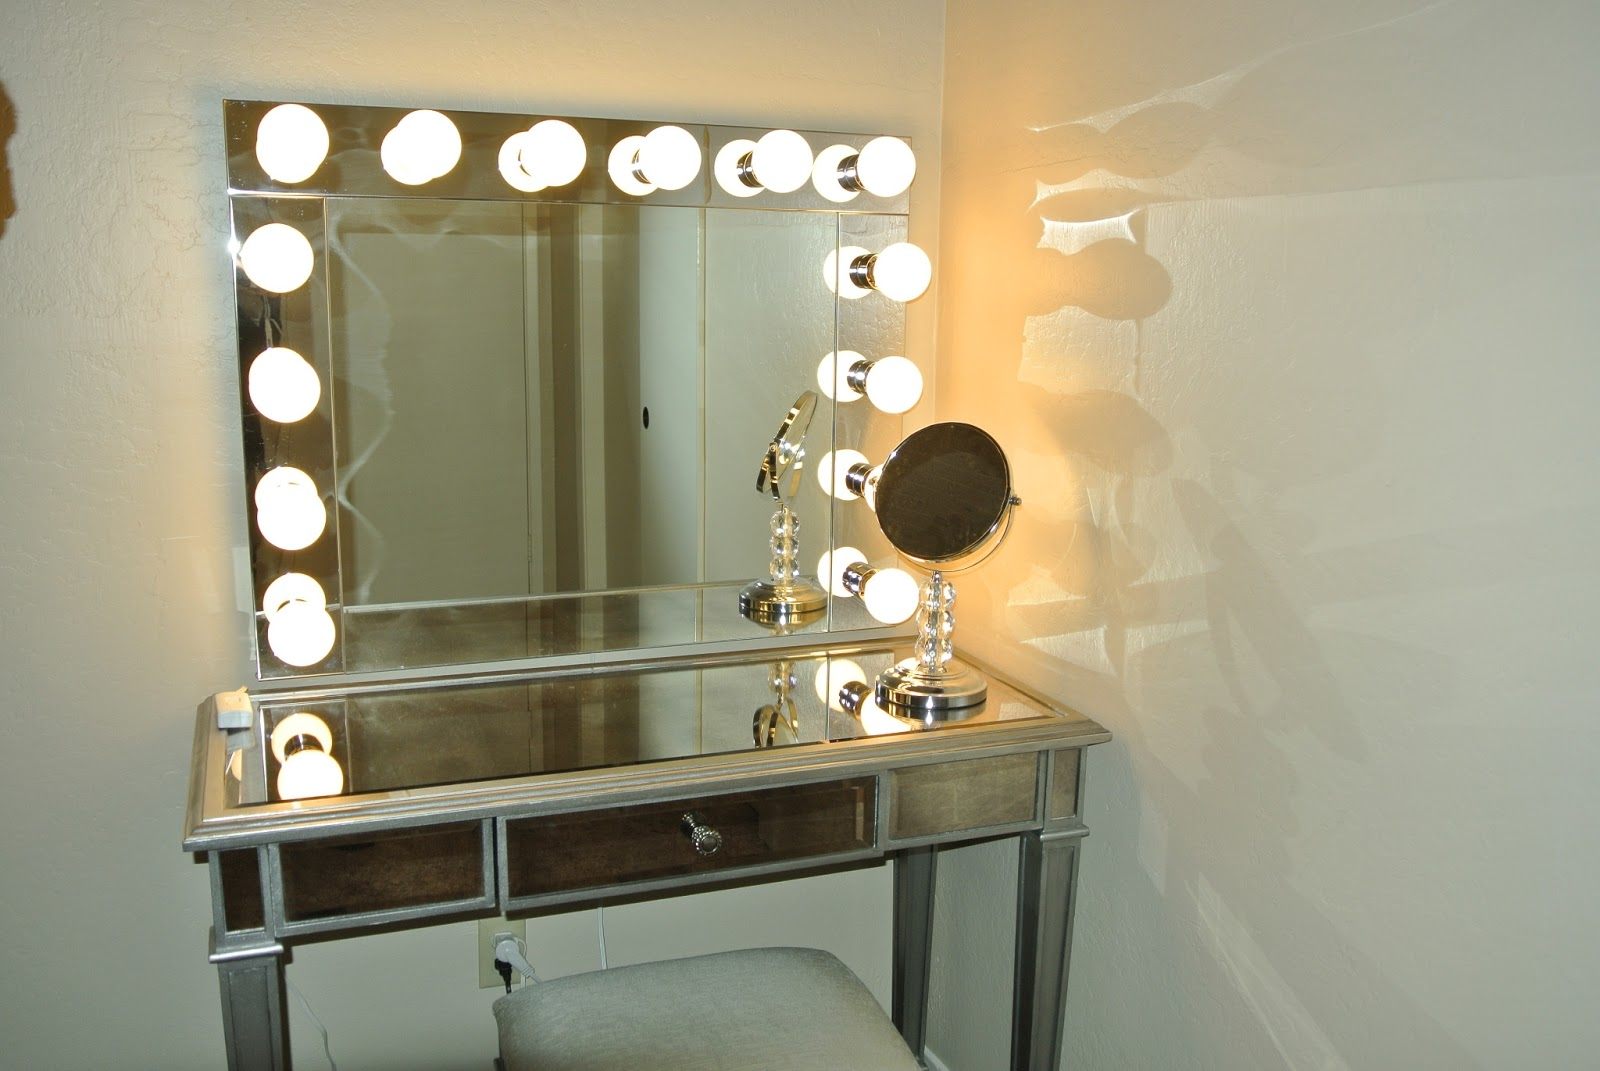 Permalink to Illuminated Makeup Wall Mirror